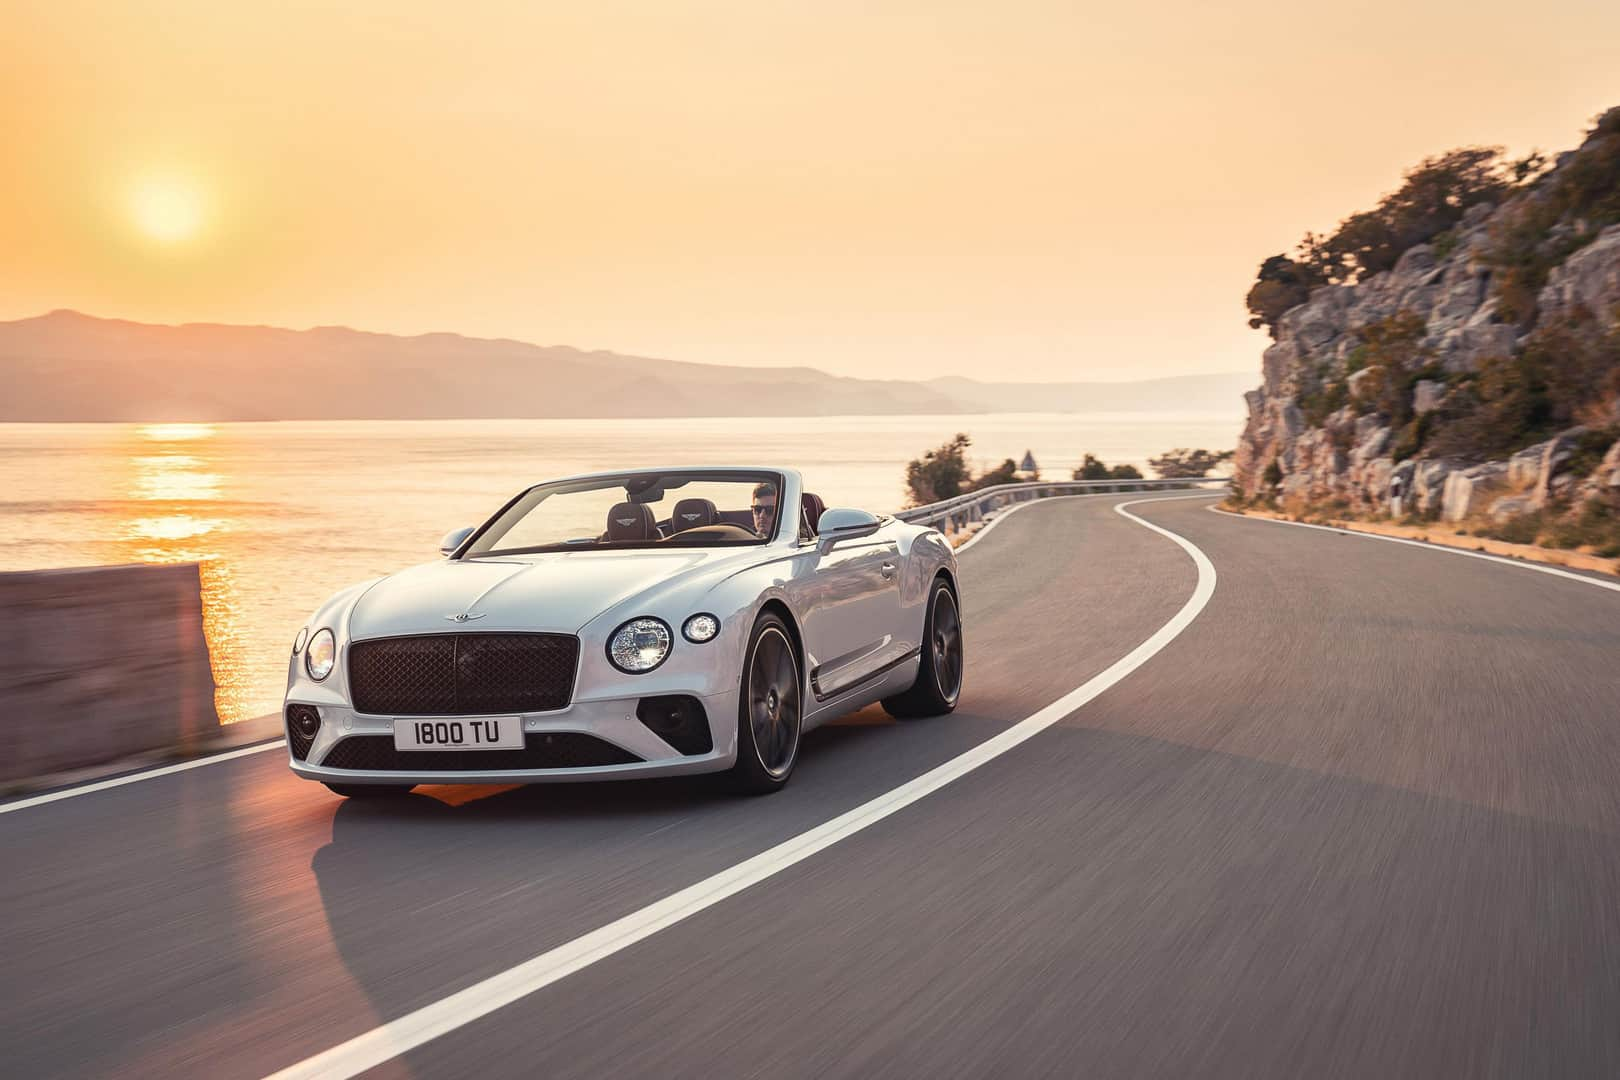 The 2019 Bentley Continental GTC is a Dream Come True